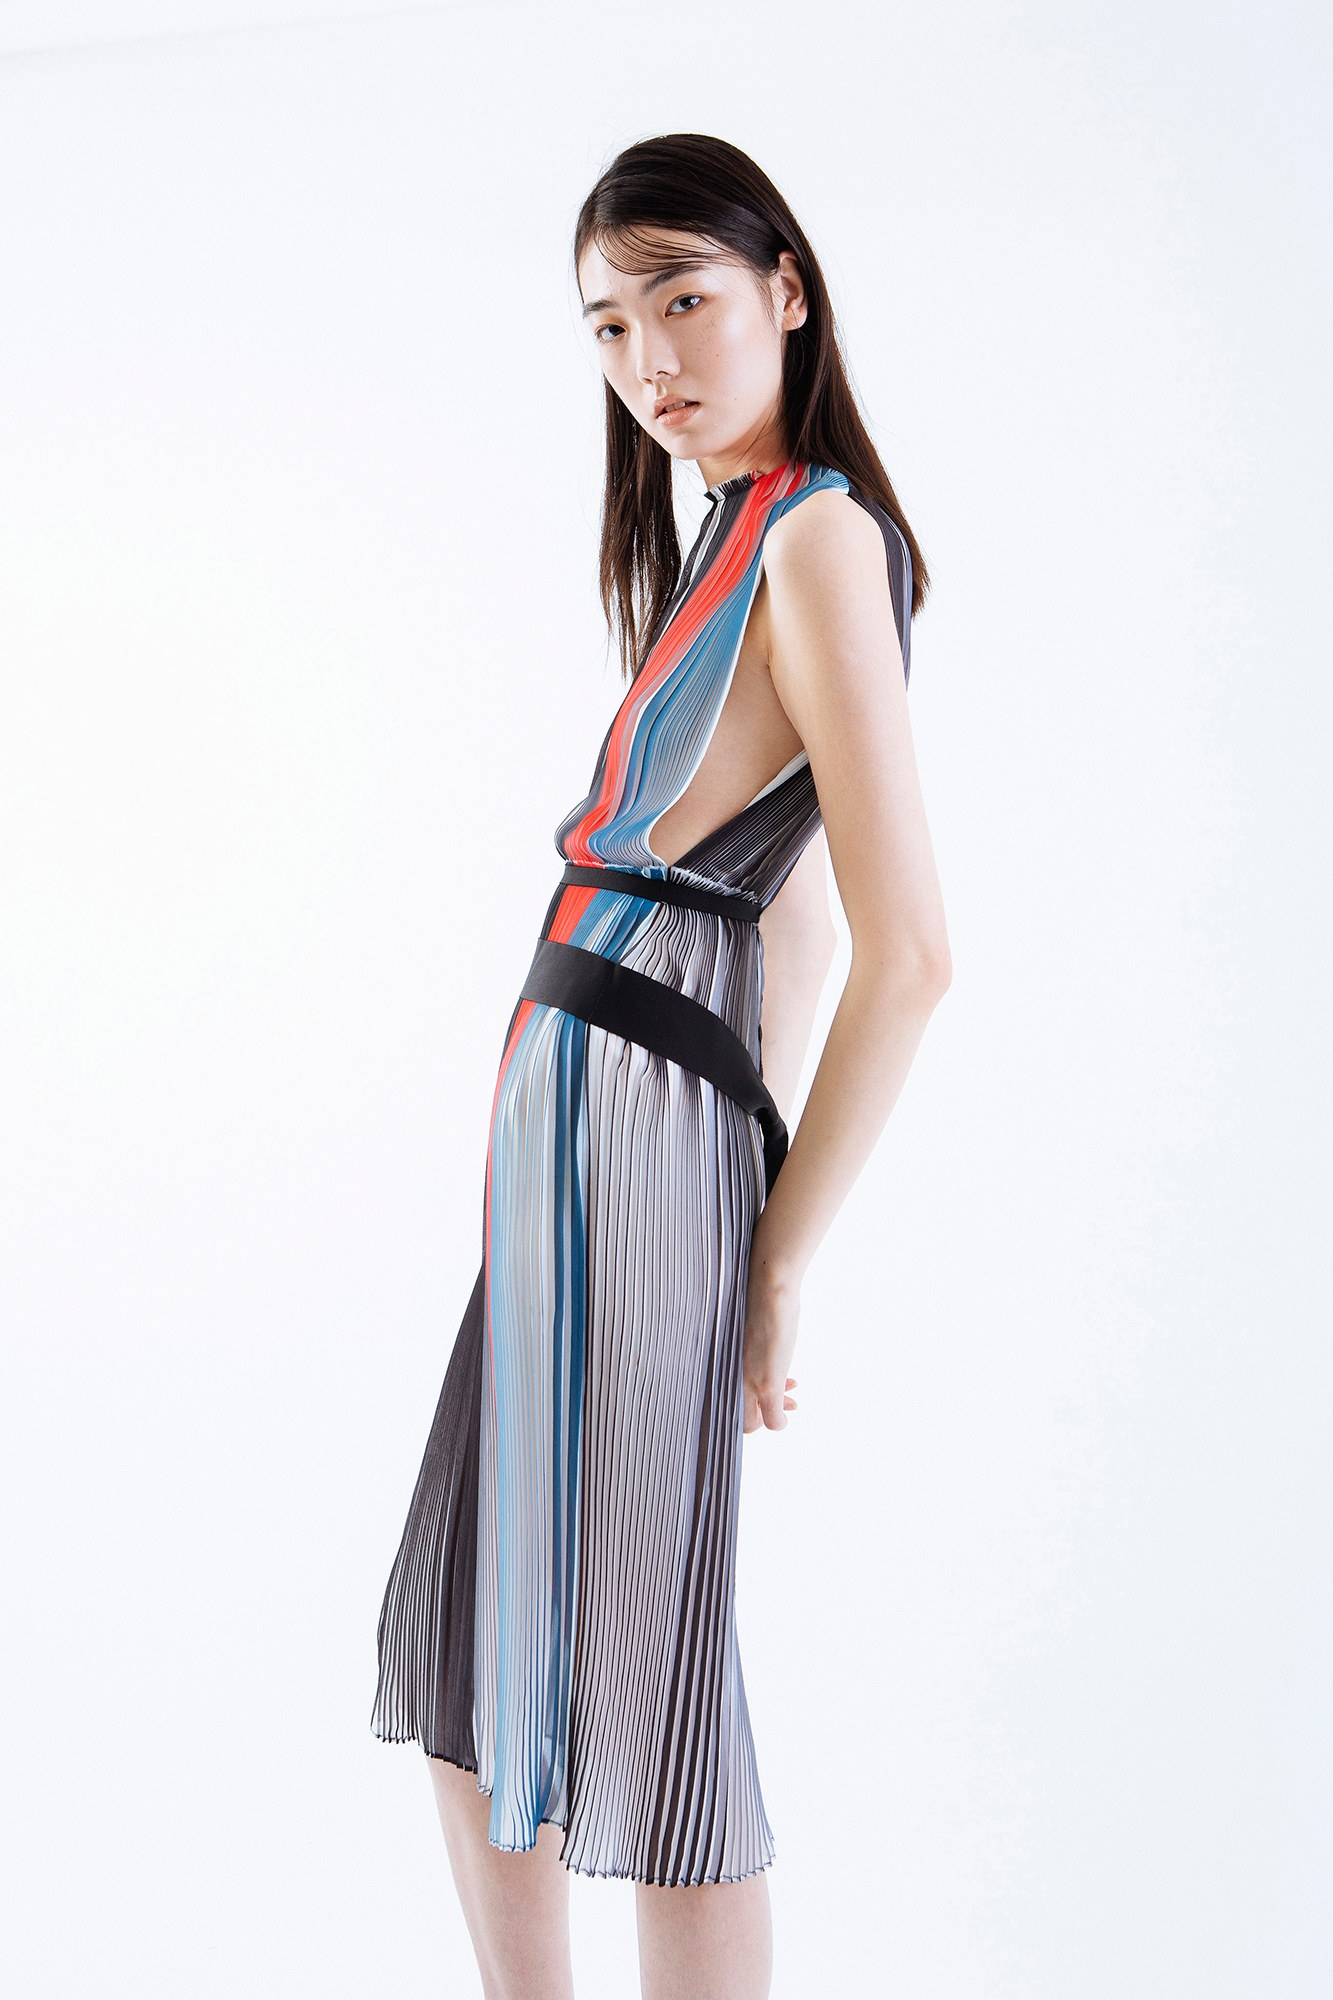 10-tome-spring-2018-ready-to-wear.jpg